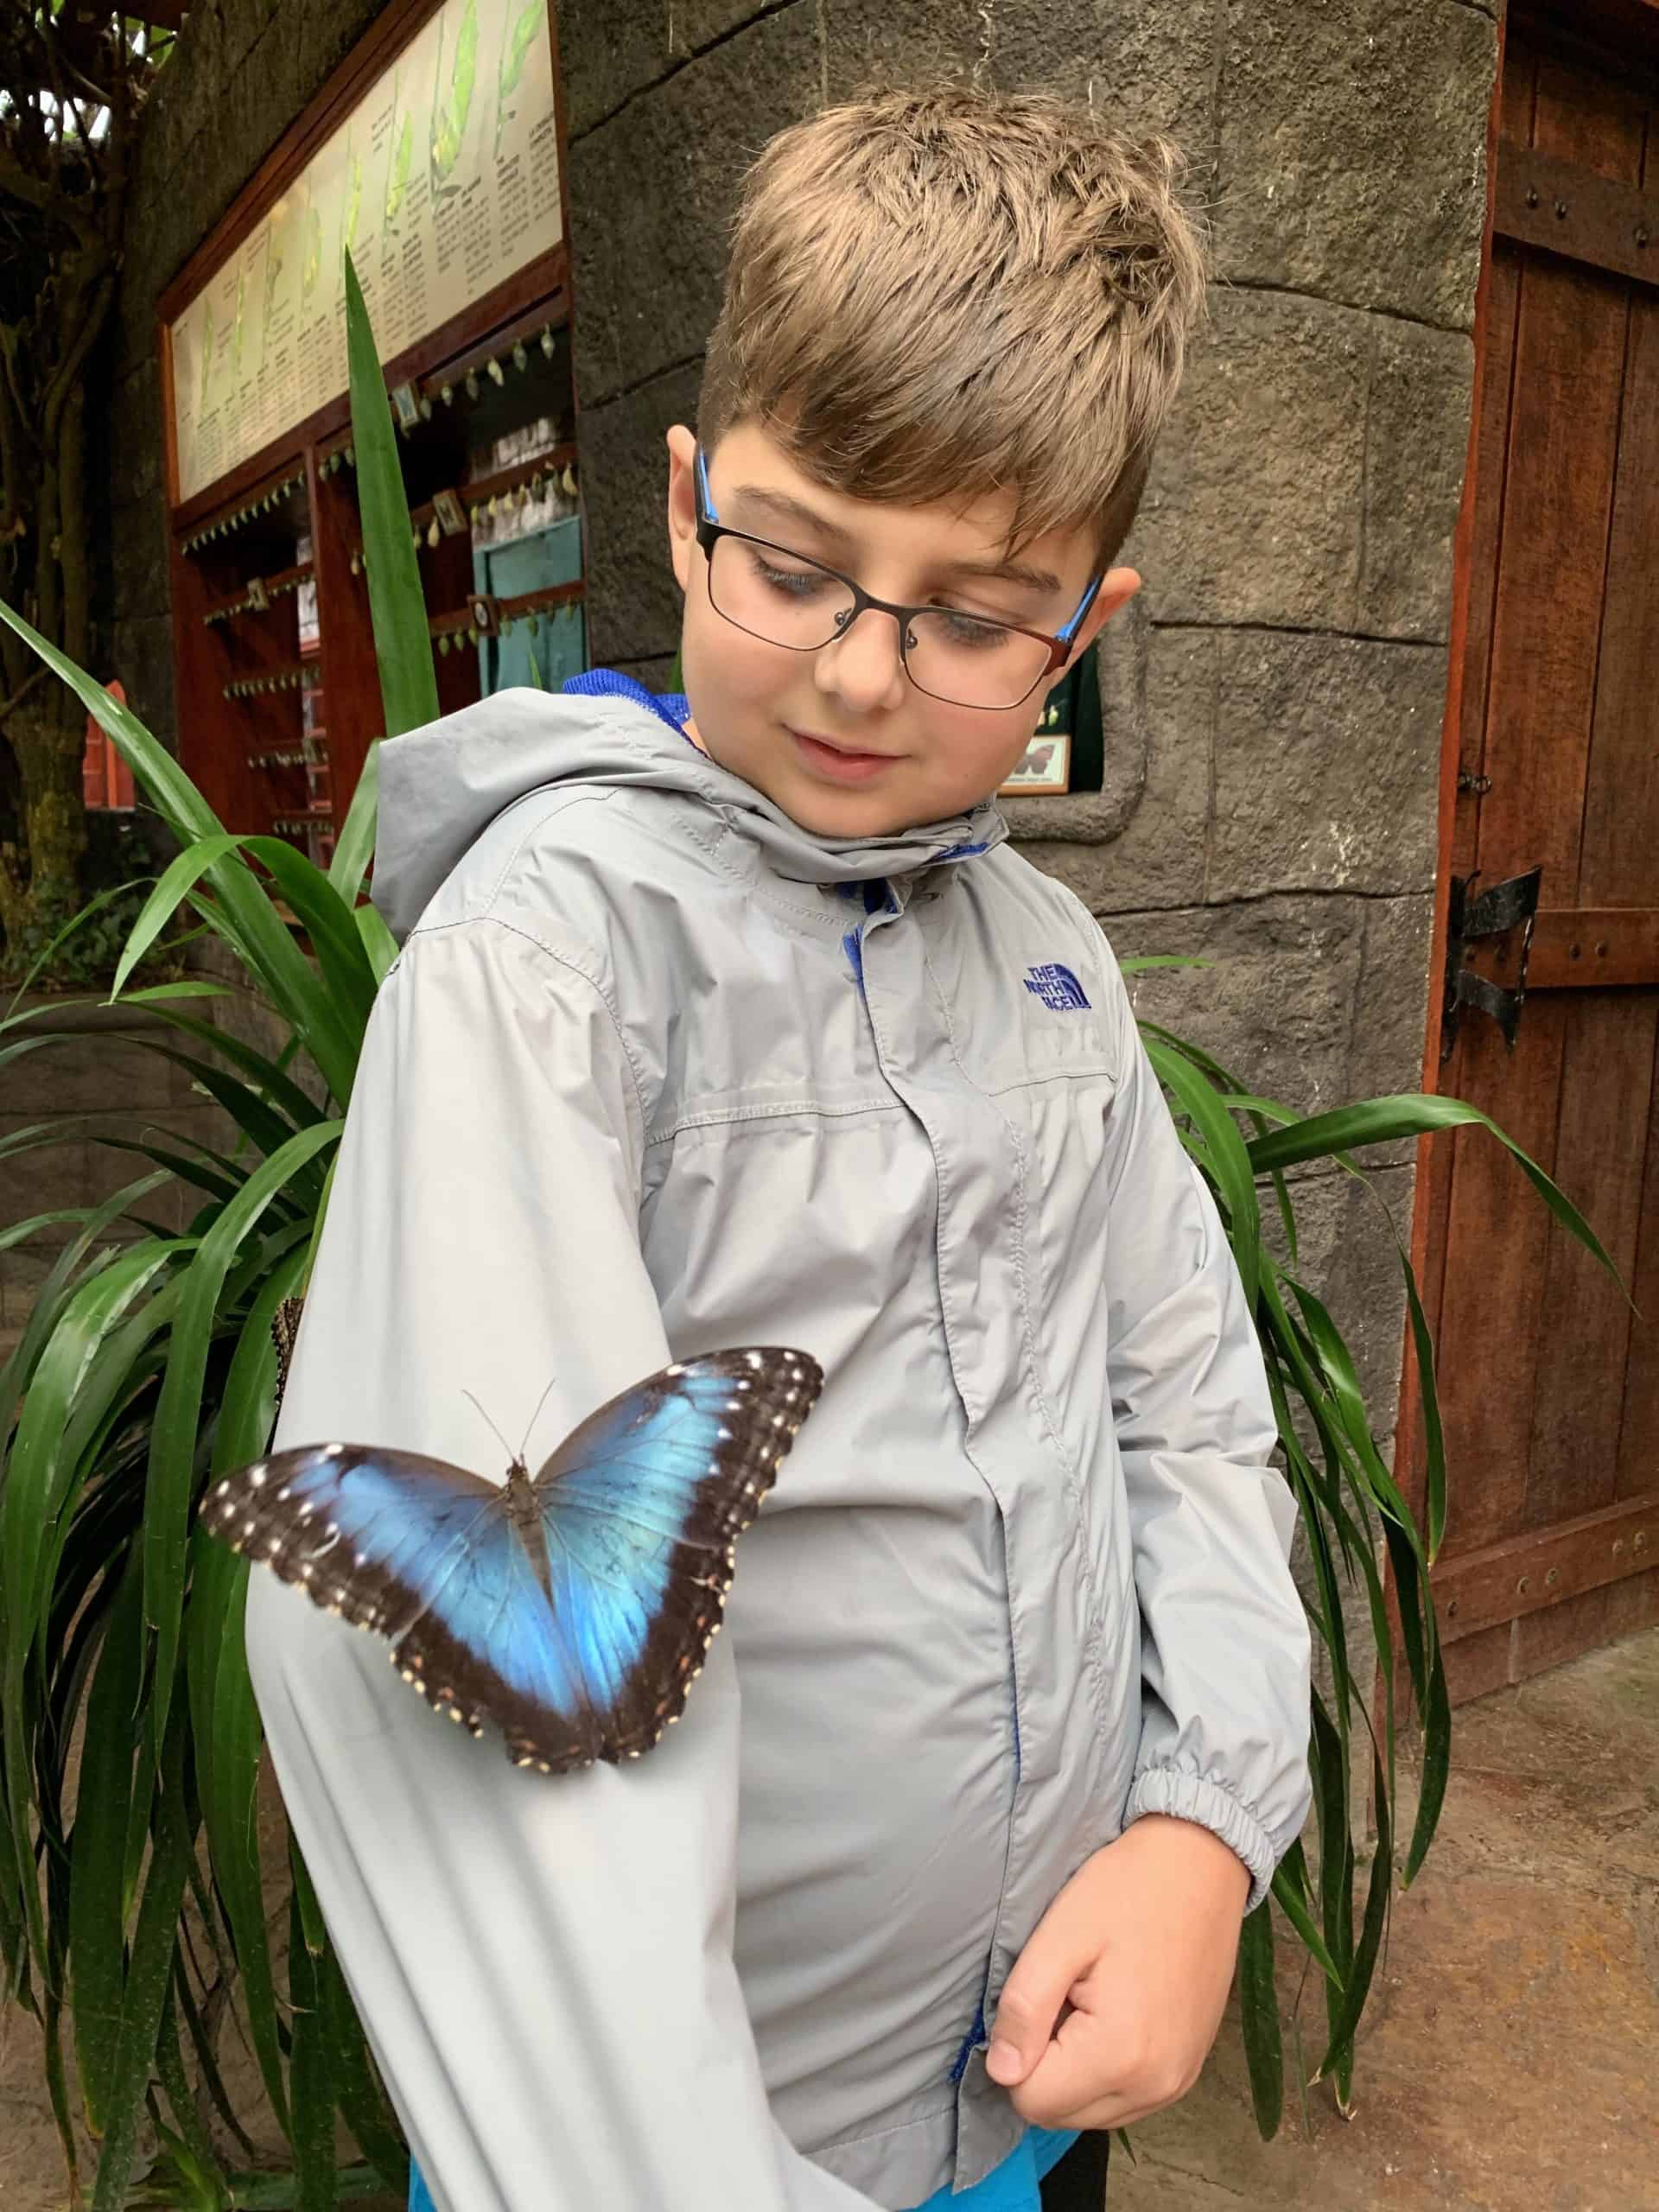 Child at butterfly exhibit at La Paz Waterfall Garden in Costa Rica